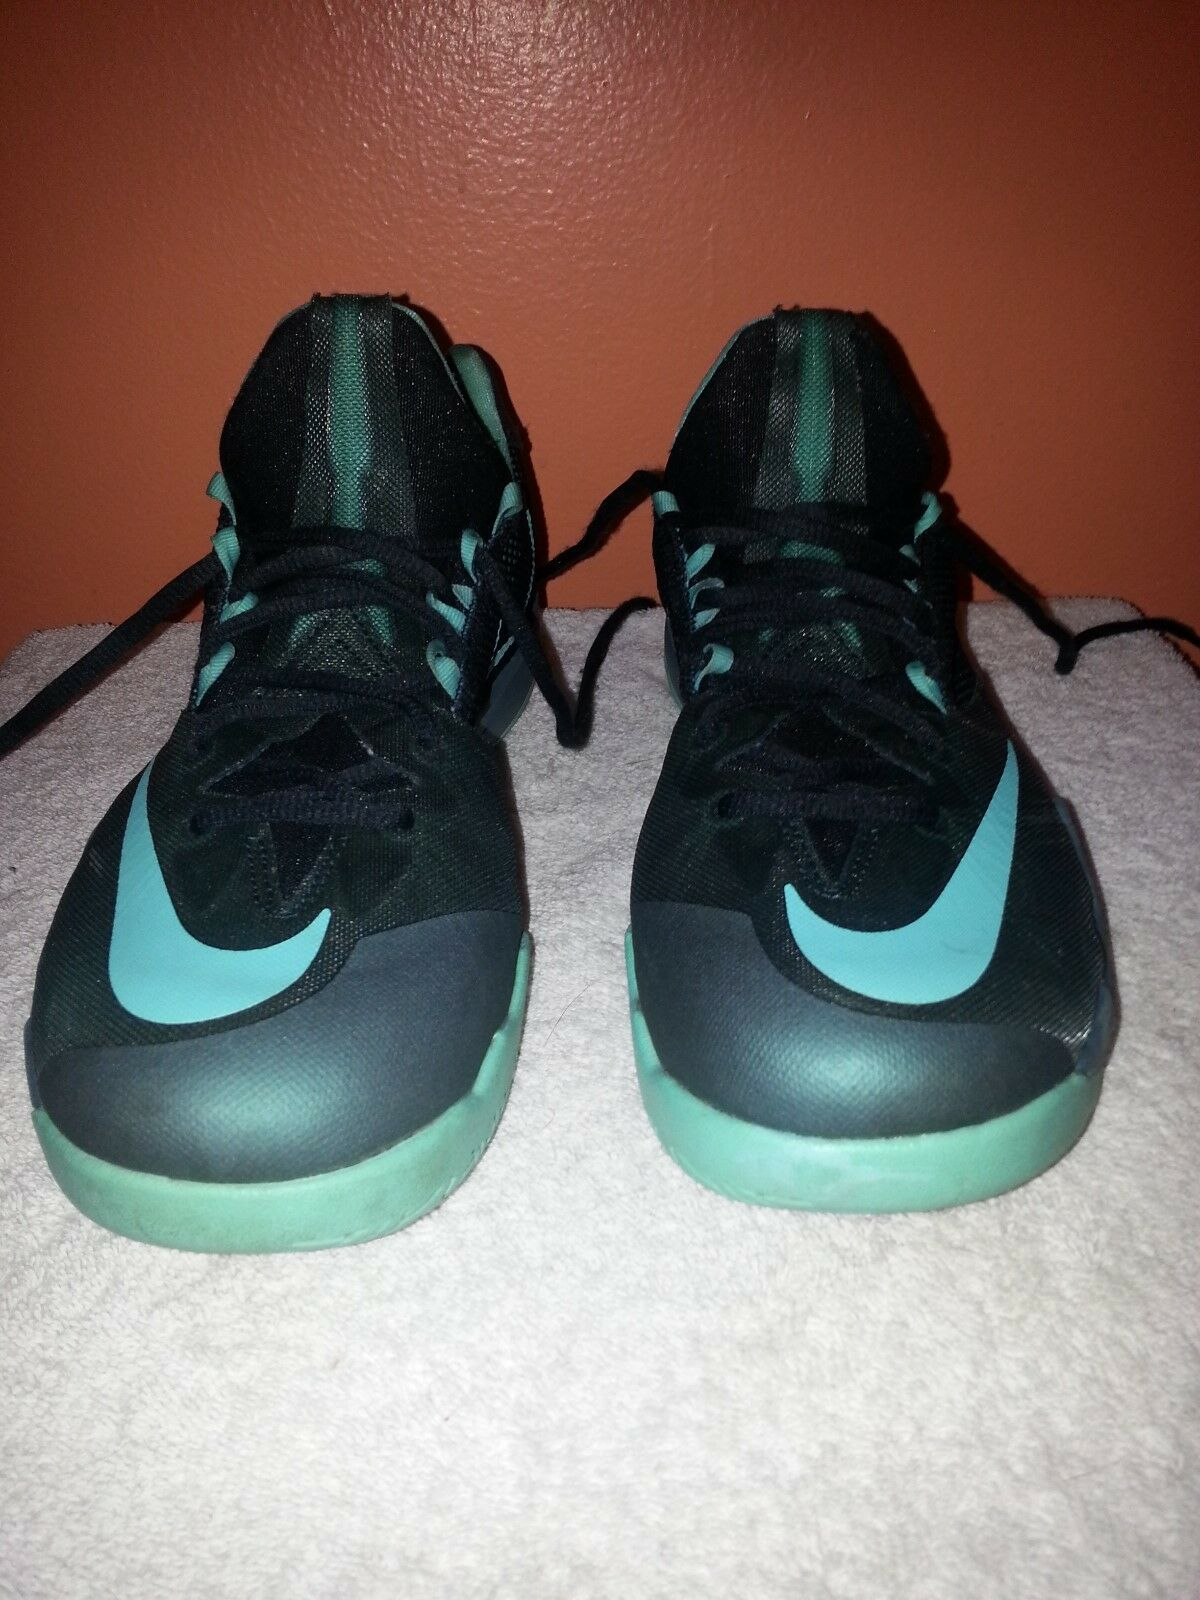 Men's Nike Zoom The Run Seaweed Turquoise Basketball Shoes 653636-333 Price reduction